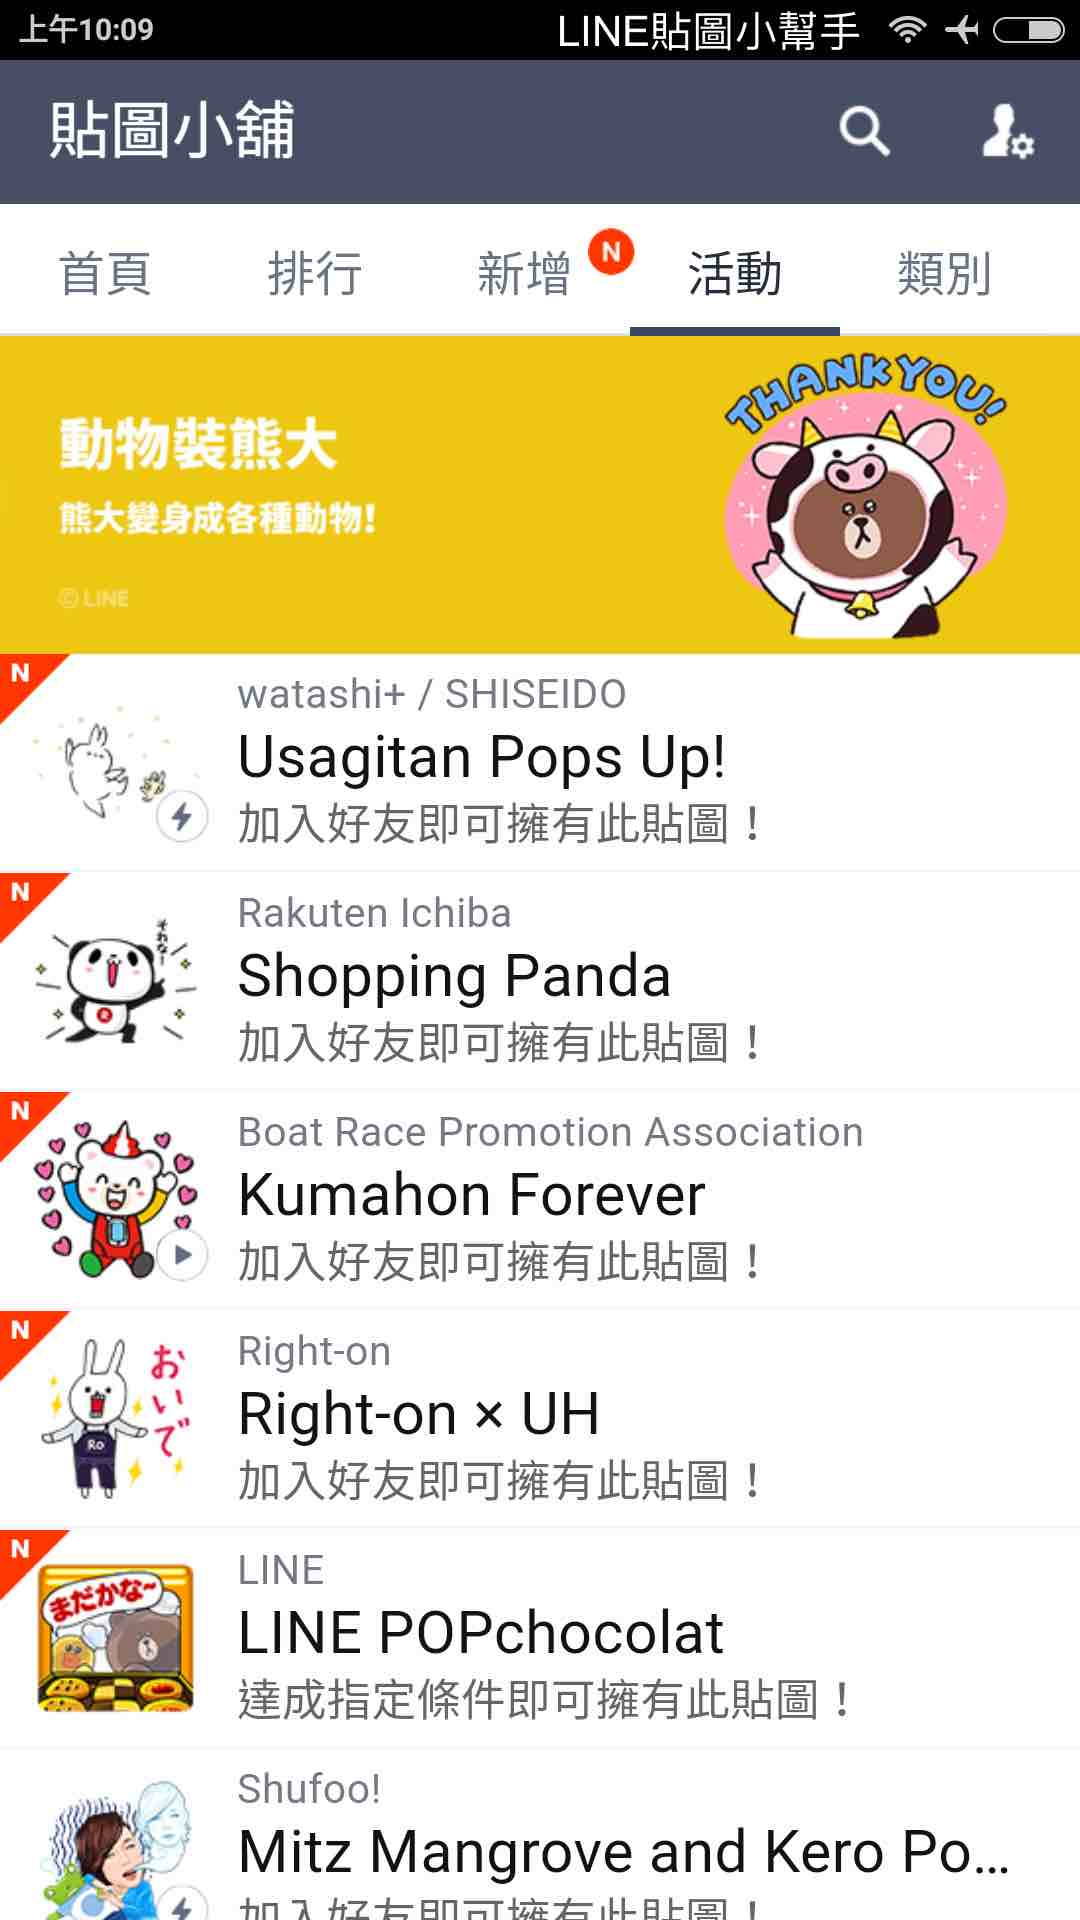 screenshot_2016-12-01-10-09-46-619_jp-naver-line-android